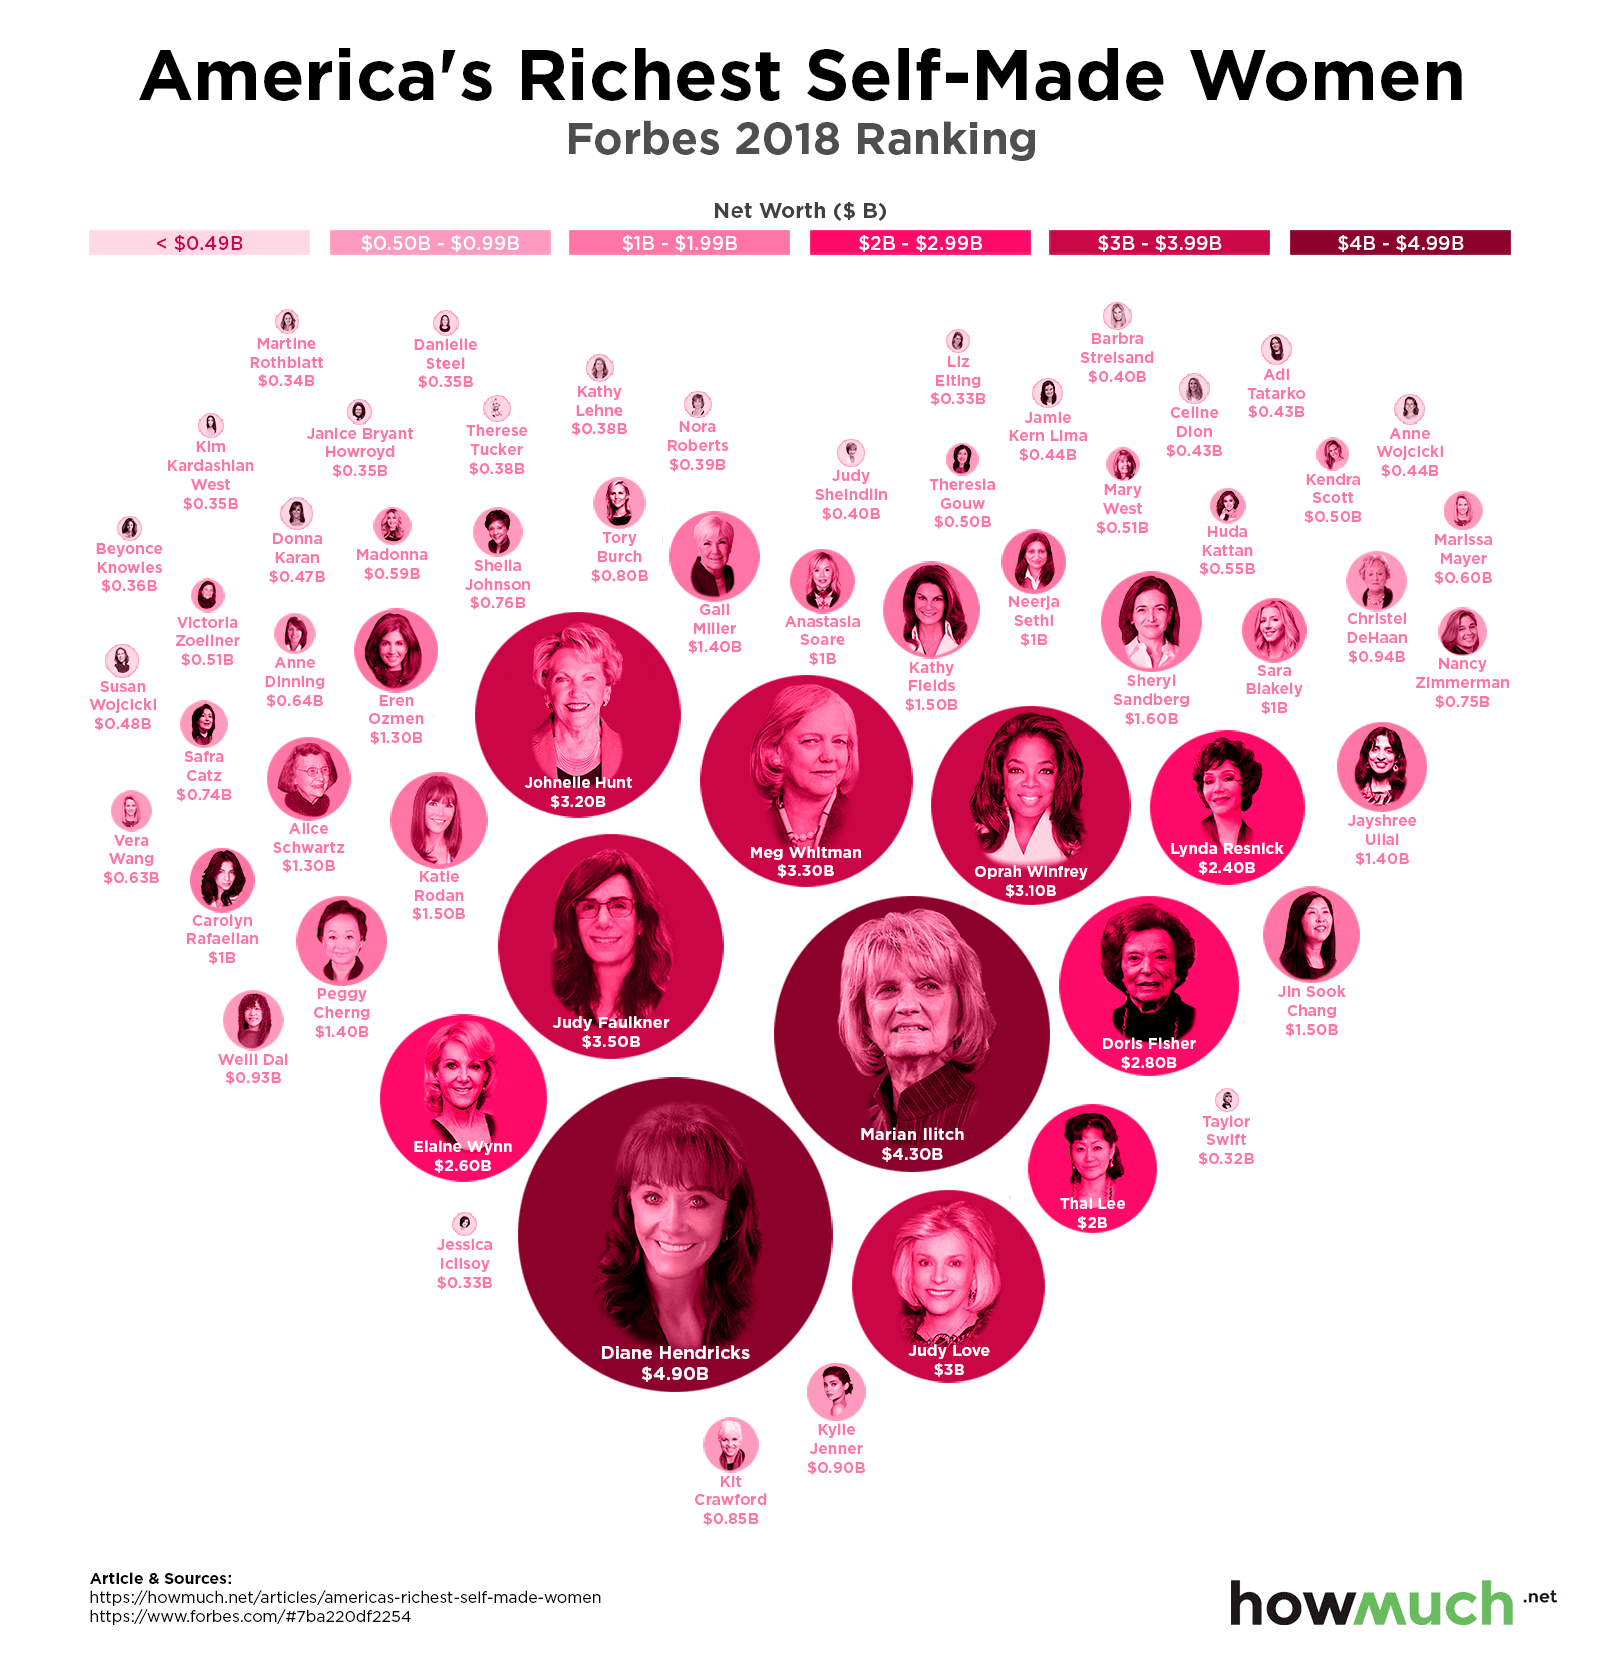 Richest Self-Made Women